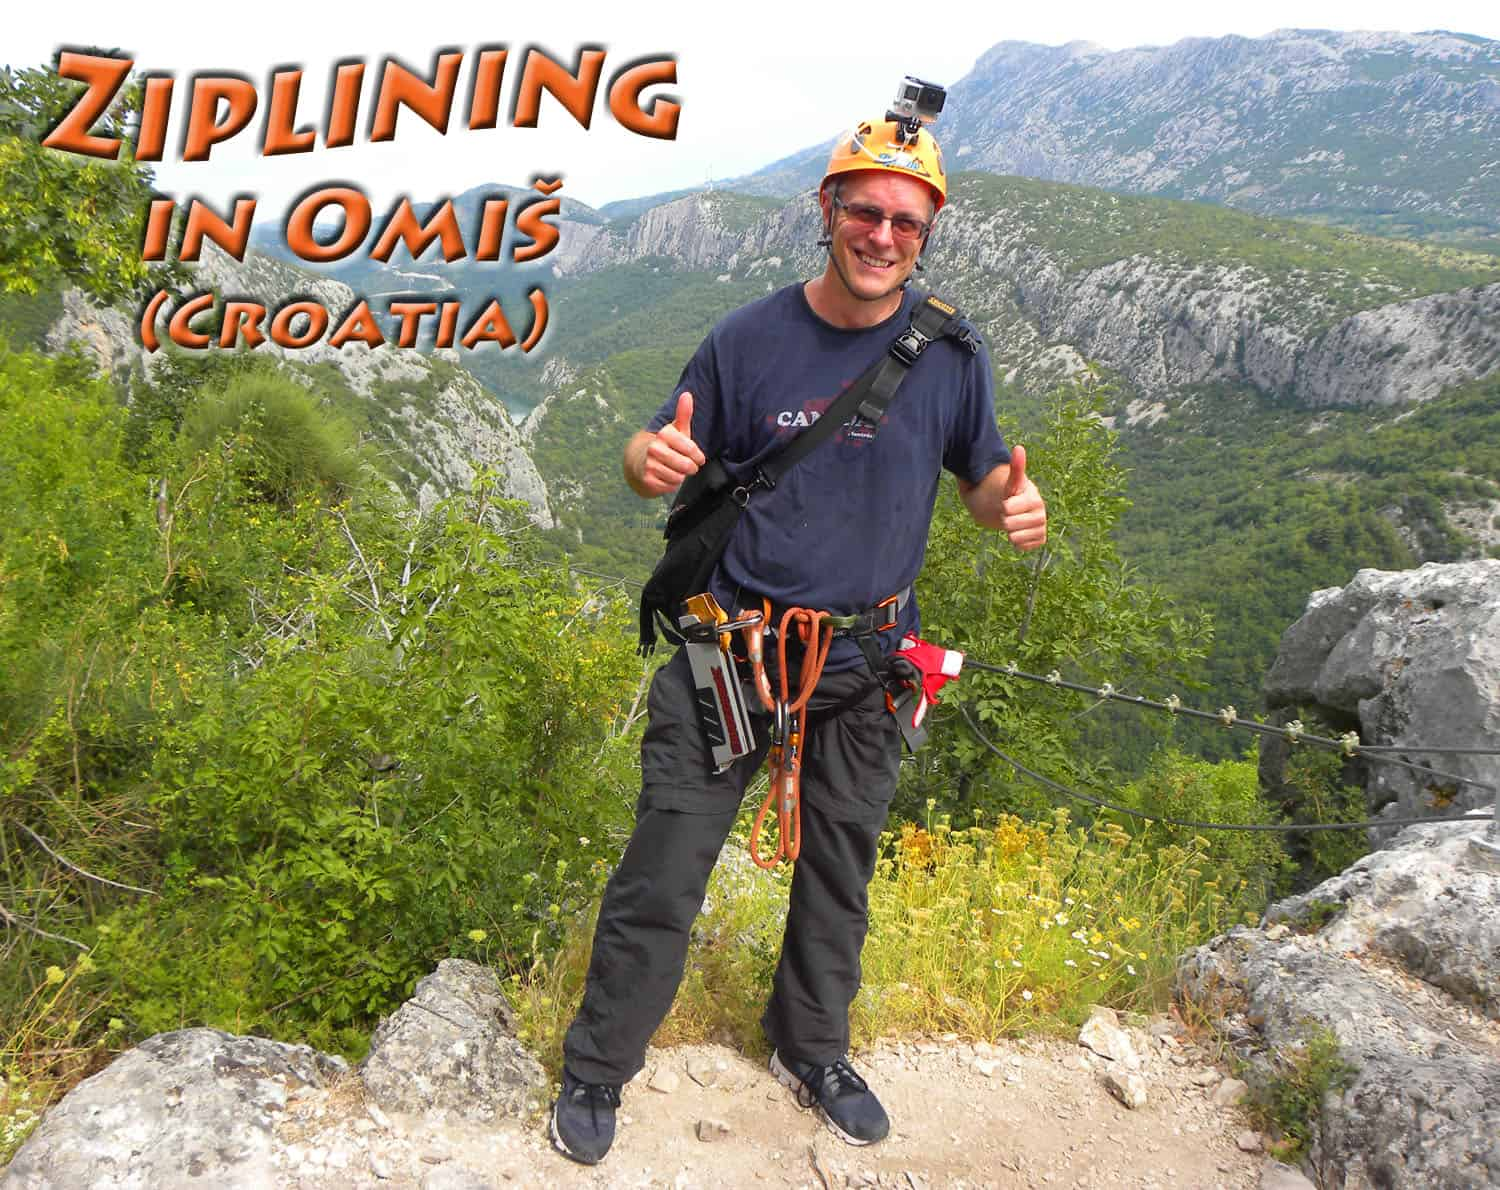 ziplining in omis, croatia